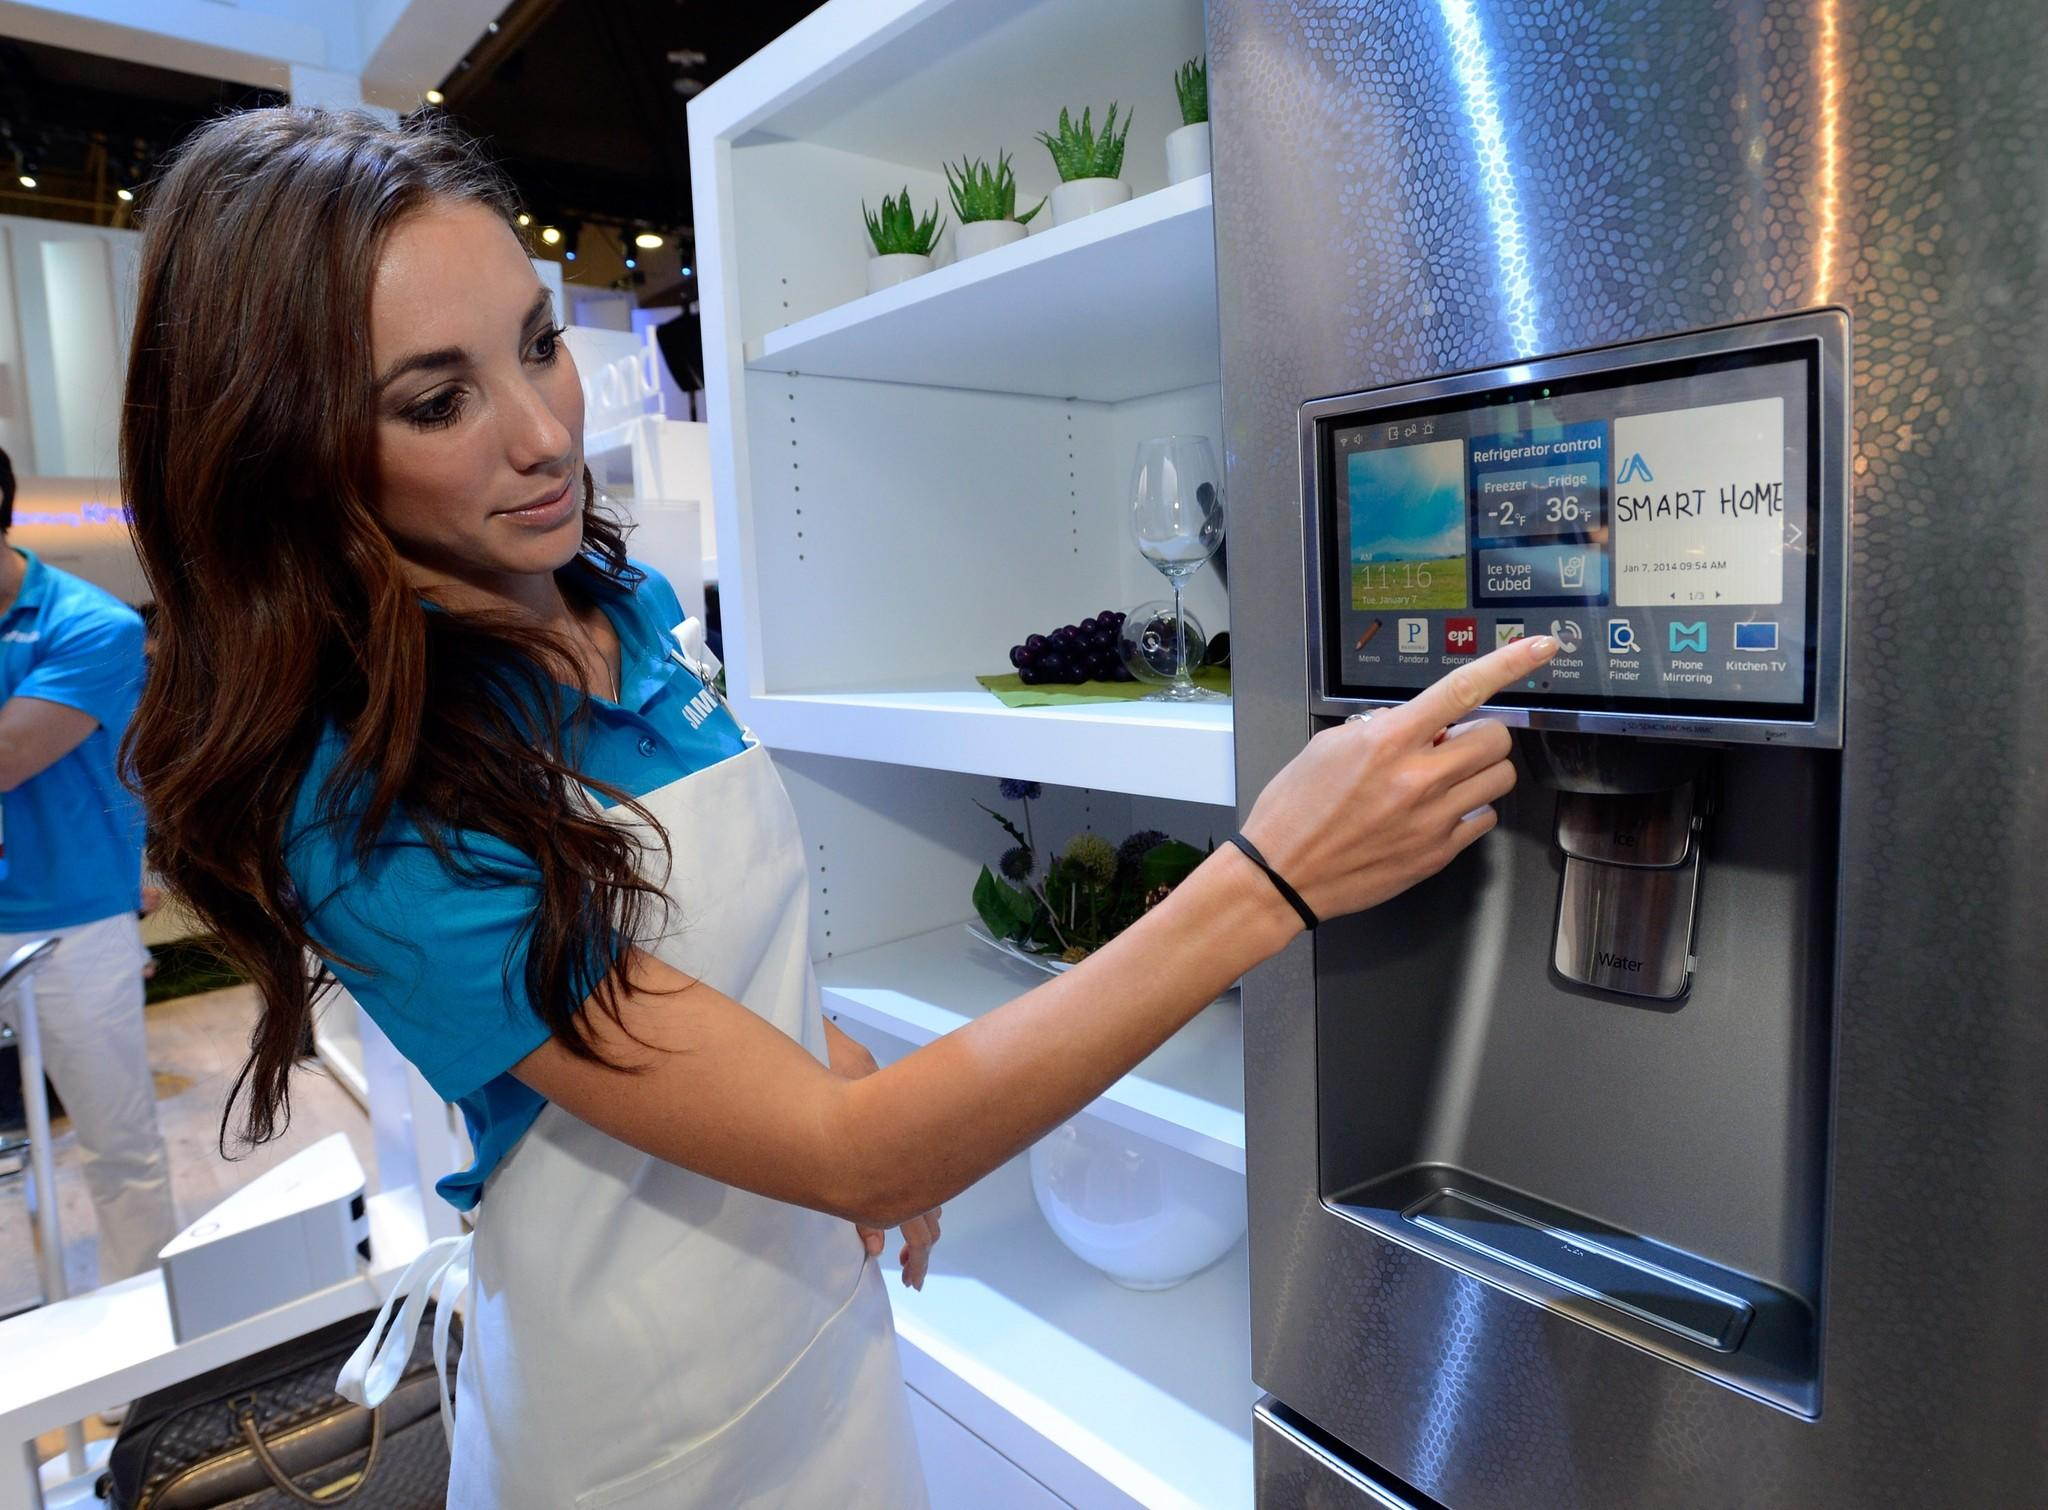 A smart refrigerator by Samsung is on display at the 2014 Consumer Electronics Show.